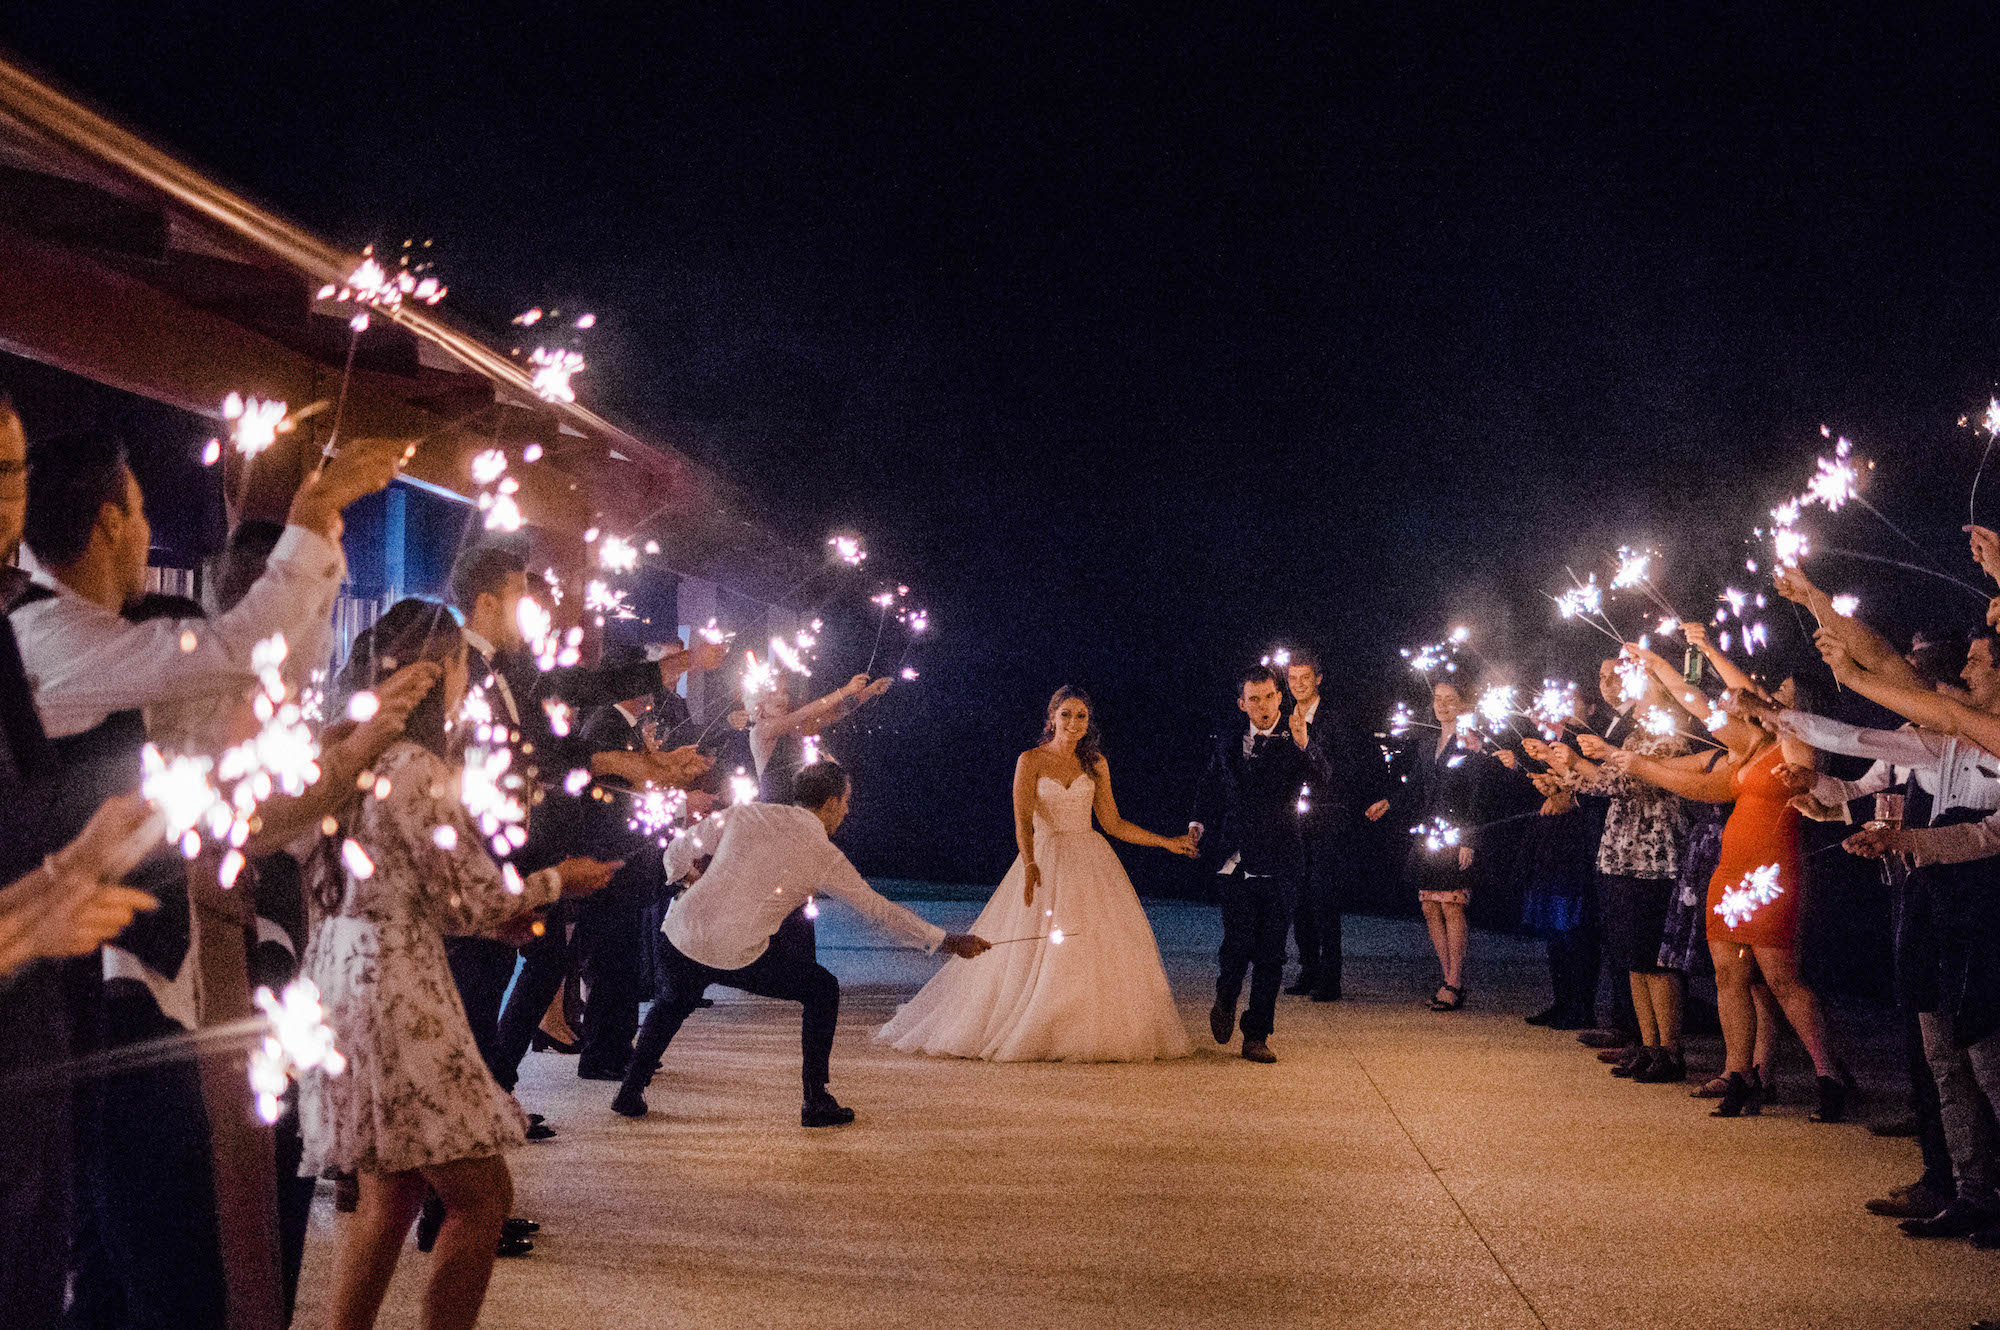 A wedding photo of a sparkler exit at a Byford wedding in Australia.